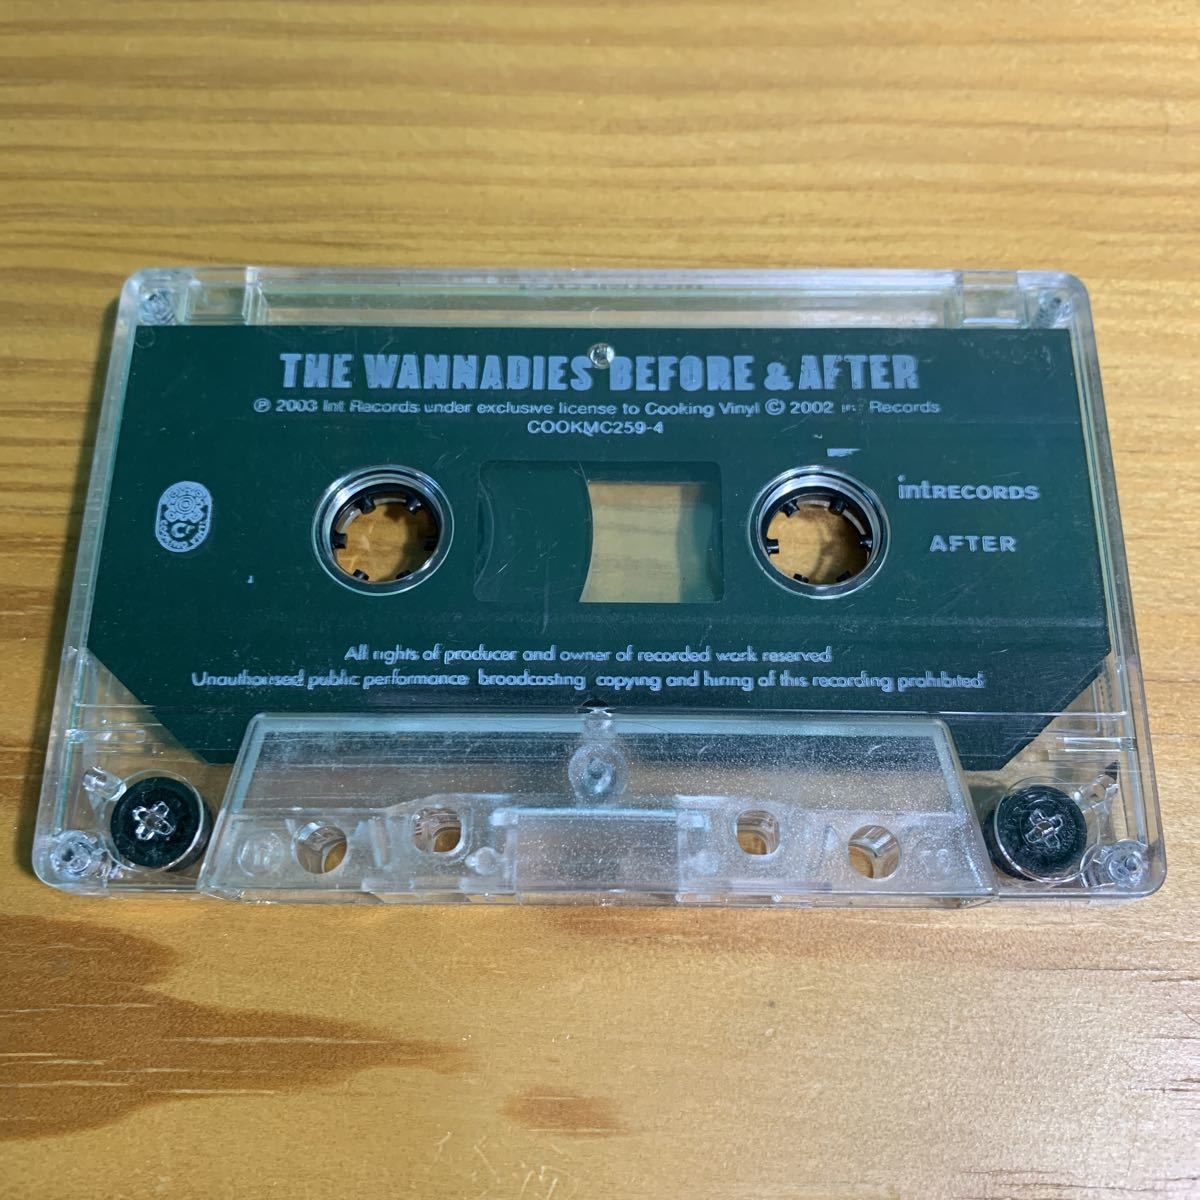 The Wannadies「Before & After」カセットテープ 輸入盤 正規品 OFFICIAL アナログ ワナダイズ ギターポップ パンク天国 2003 名作 激レア!_画像6